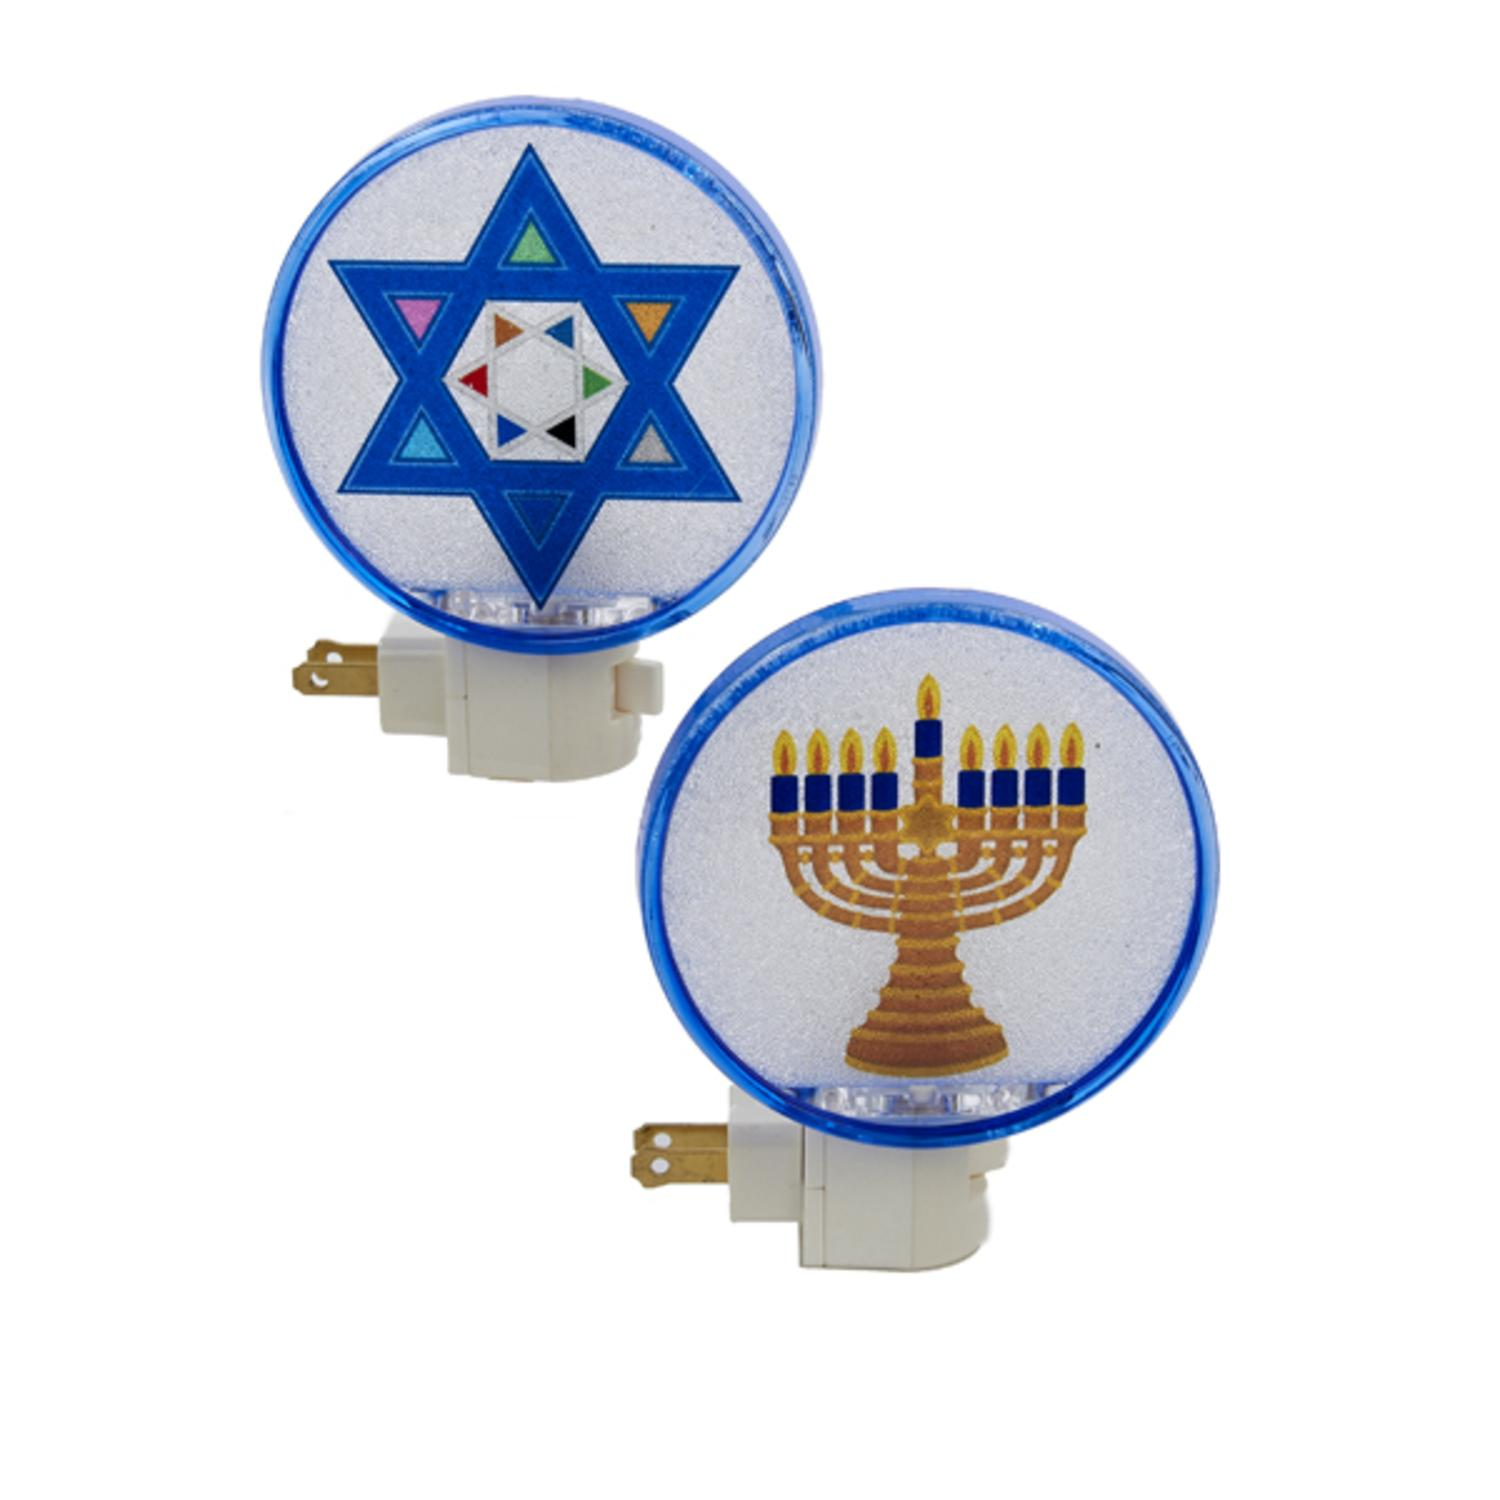 "5"" Beaded Hanukkah Star of David Festive Holiday Night Light by Kurt Adler"